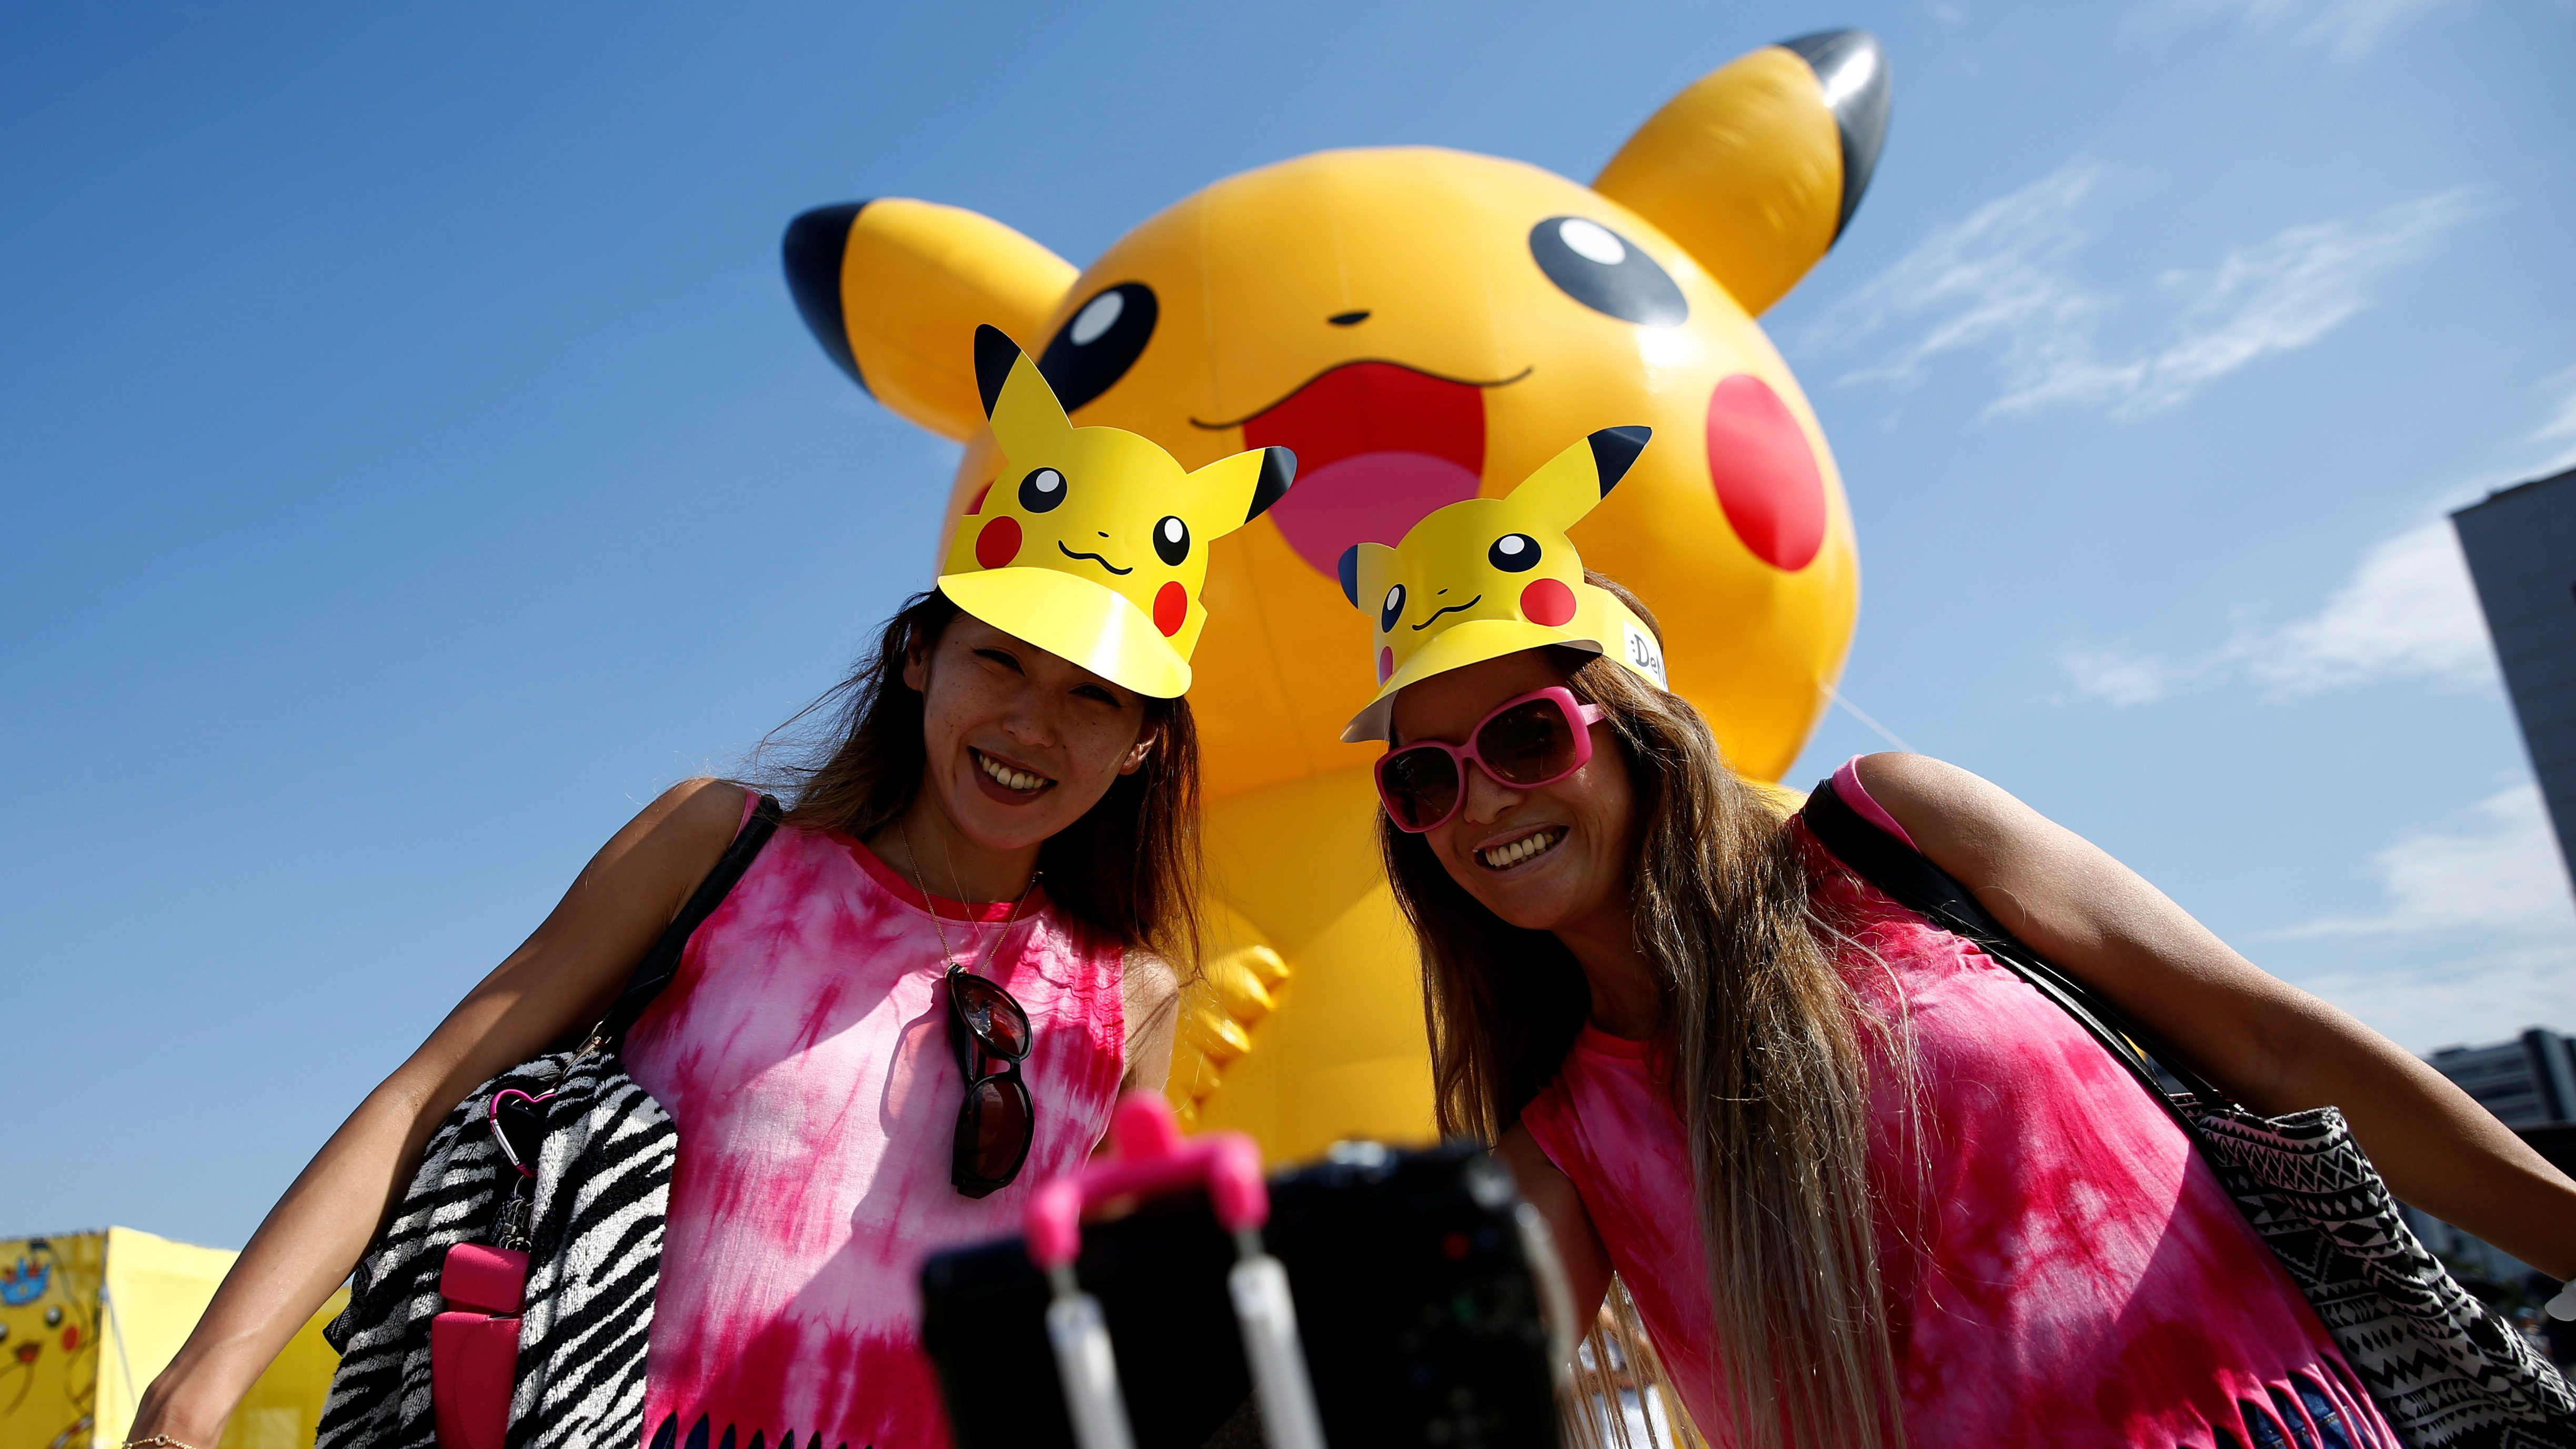 Women take a selfie in front of a large Pikachu figure at a Pokemon Go Park event in Yokohama, Japan August 9, 2017.